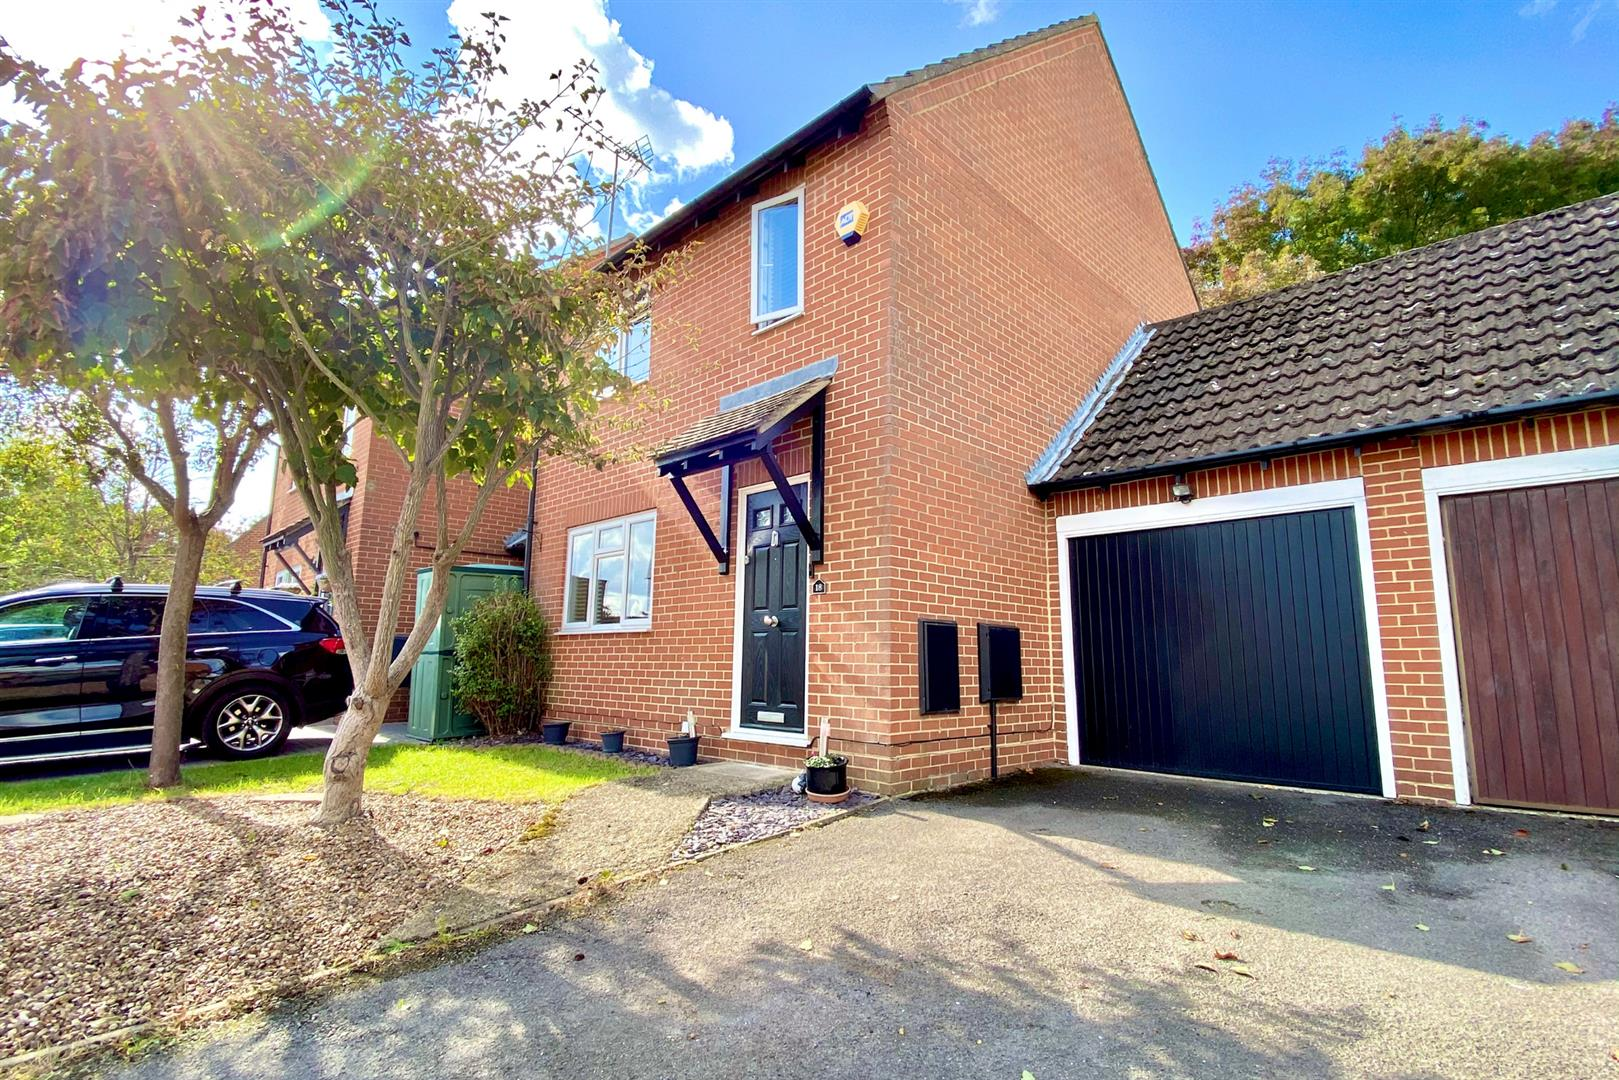 3 bed link detached house for sale in Earley, RG6